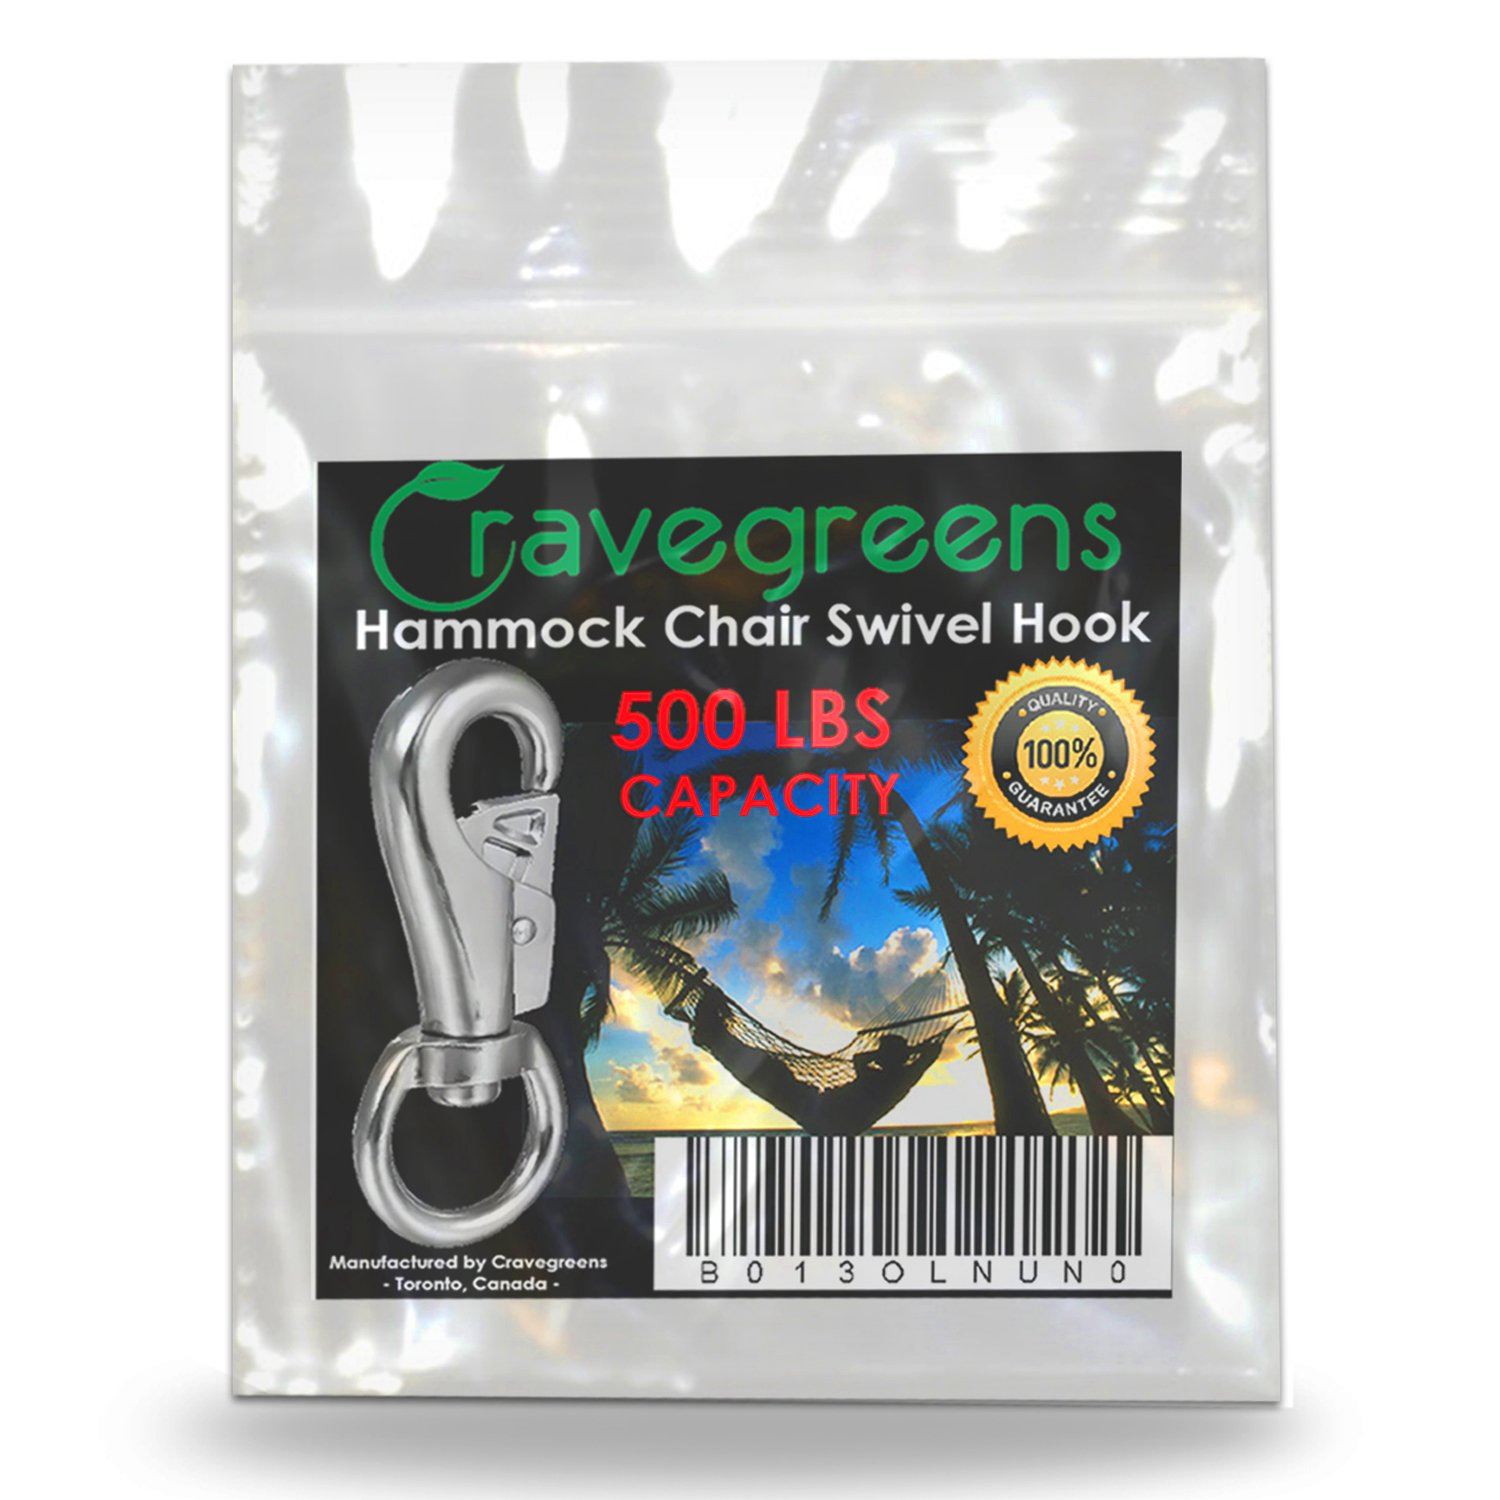 Hanging Chair/Hammock Chair Swivel Hook Snap by 500 LB Capacity - Outdoor/Indoor by Cravegreens (Image #4)